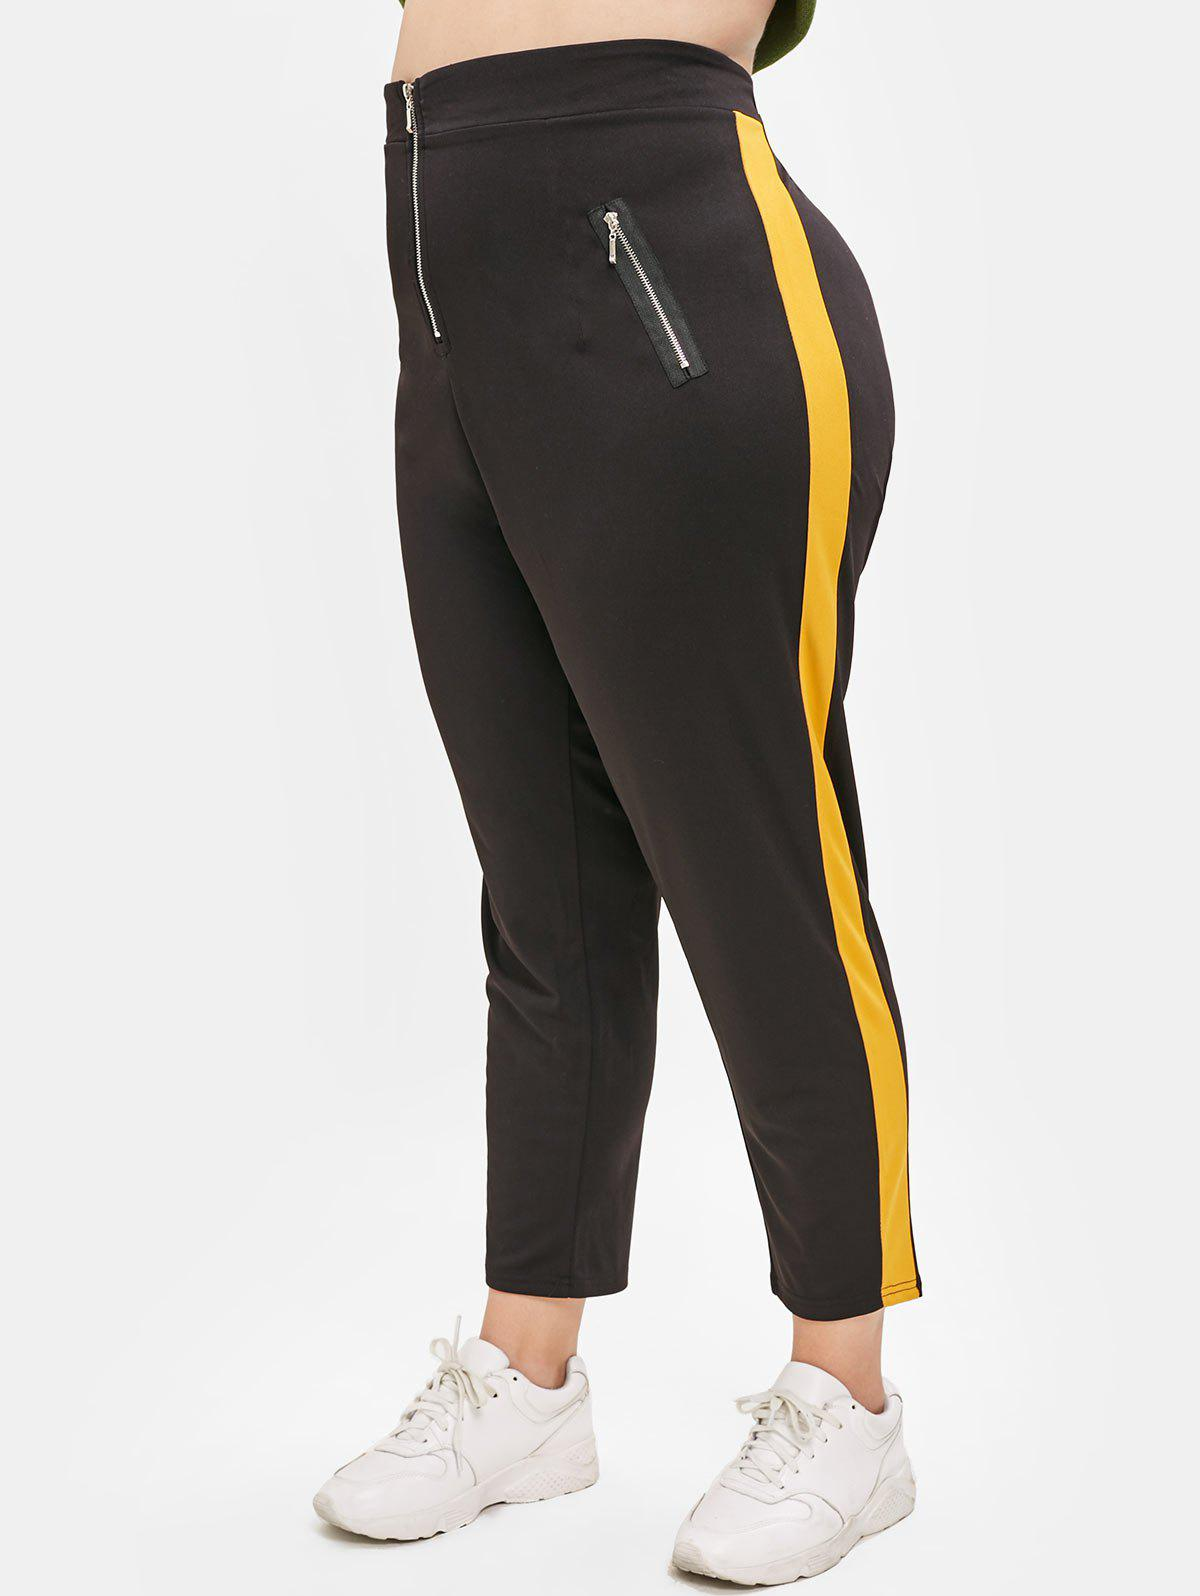 Plus Size Two Tone Pants with Zippers - BLACK 4X